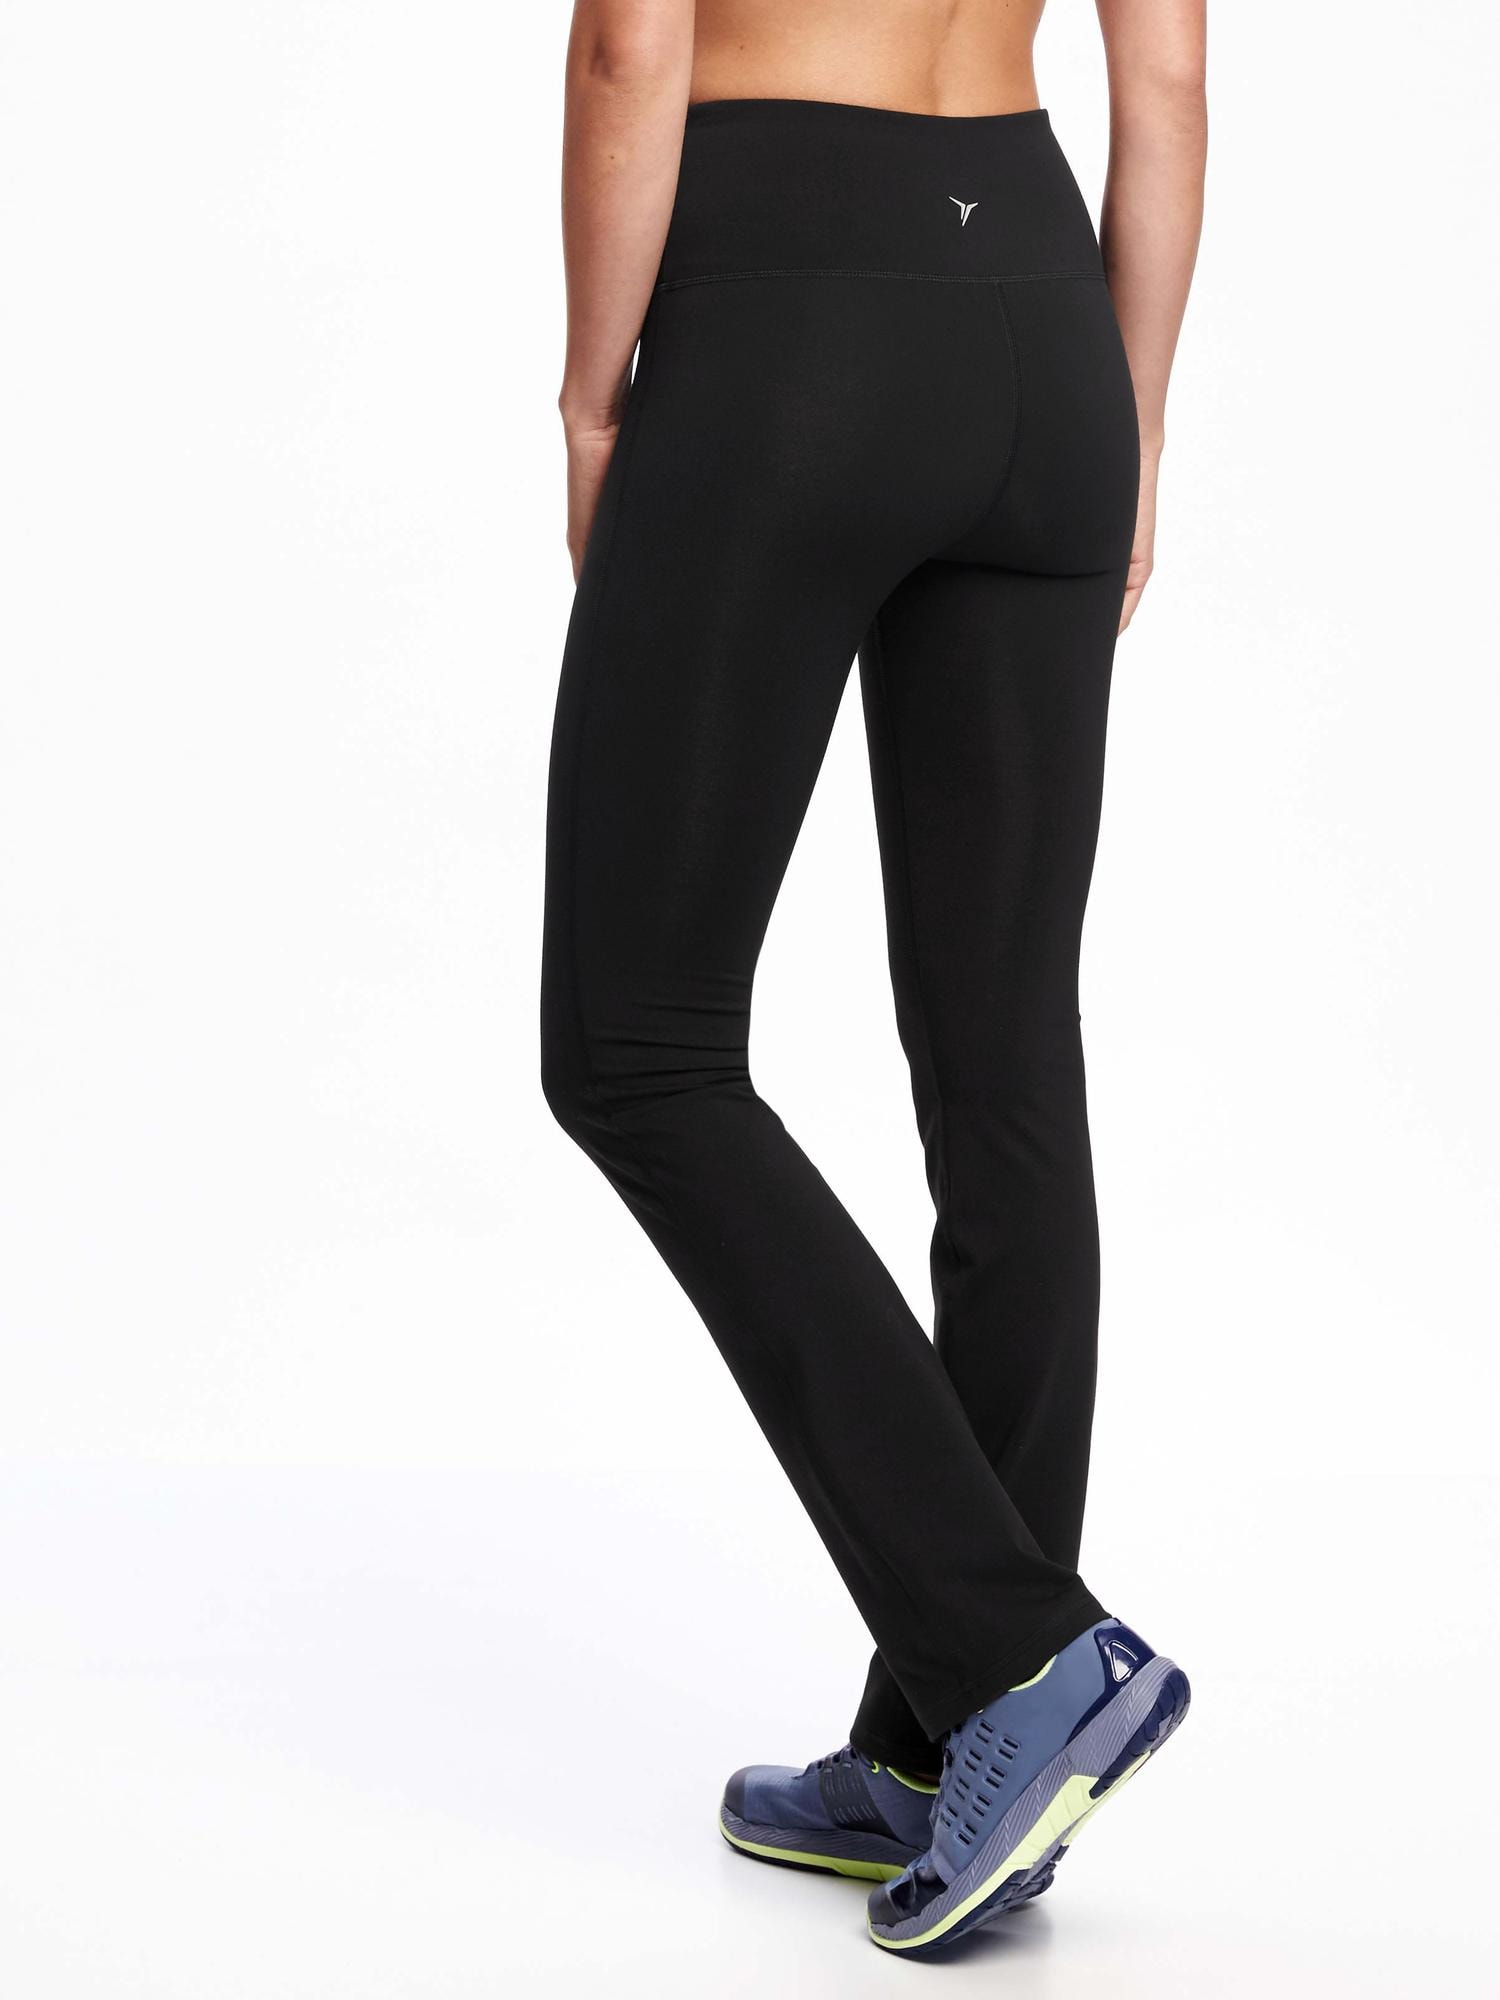 54e765b517 High-Rise Elevate Straight Compression Pants for Women   Old Navy